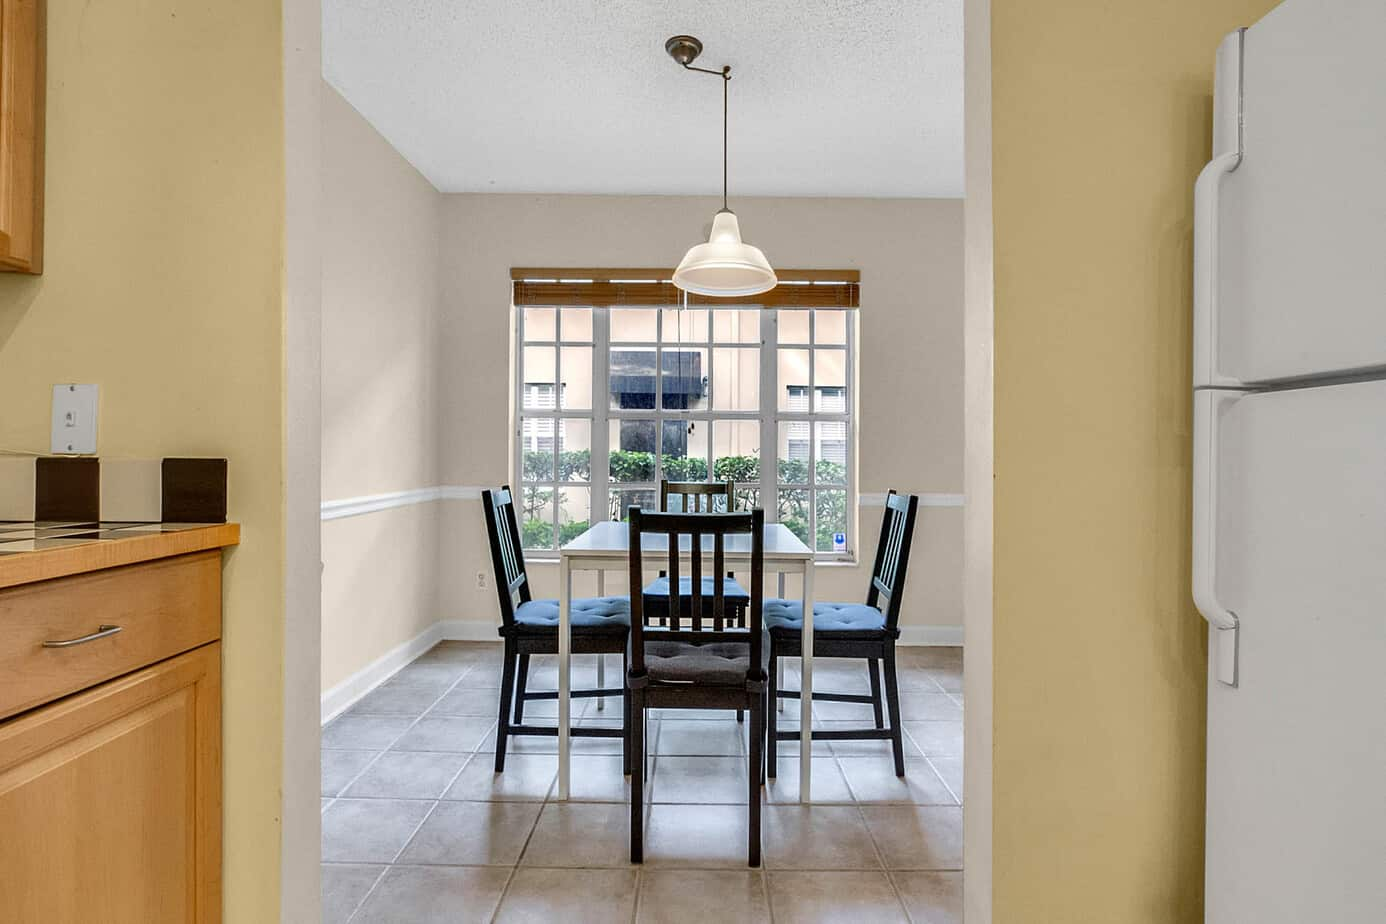 dining area of 408 S Arrawana Ave Tampa FL 33609 with brown chairs and white table